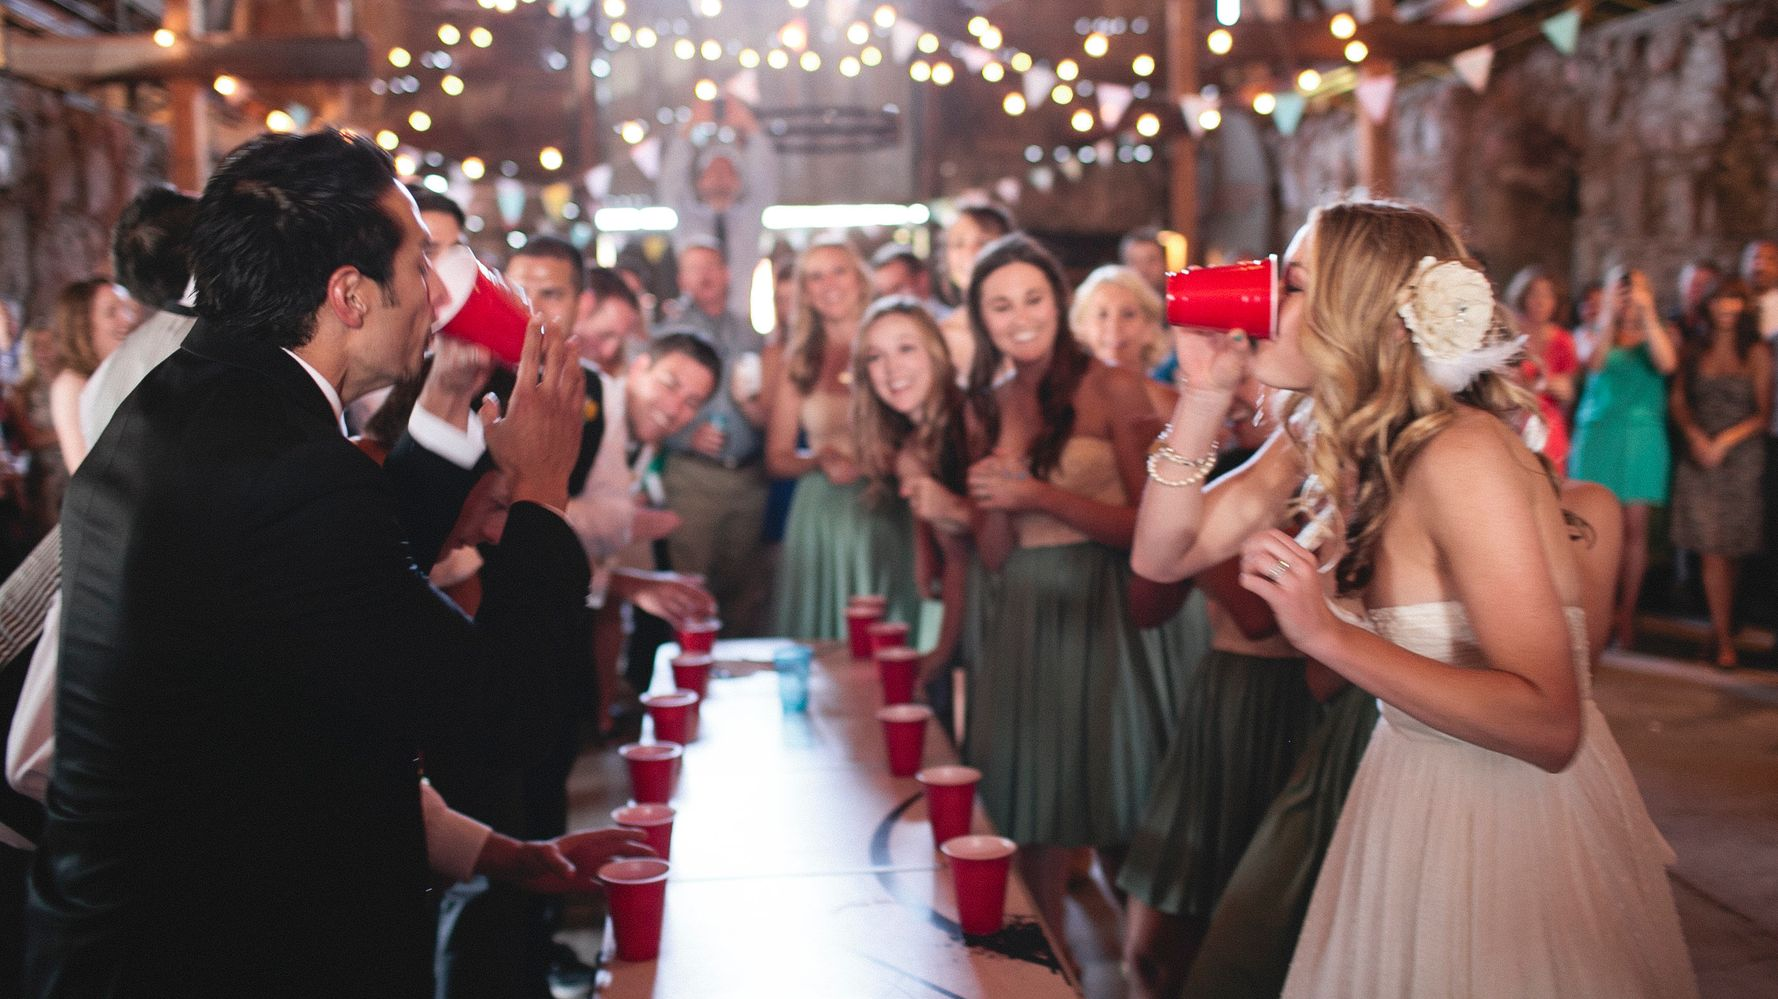 21 Awesome Wedding Games That Will Keep The Party Going | HuffPost Life